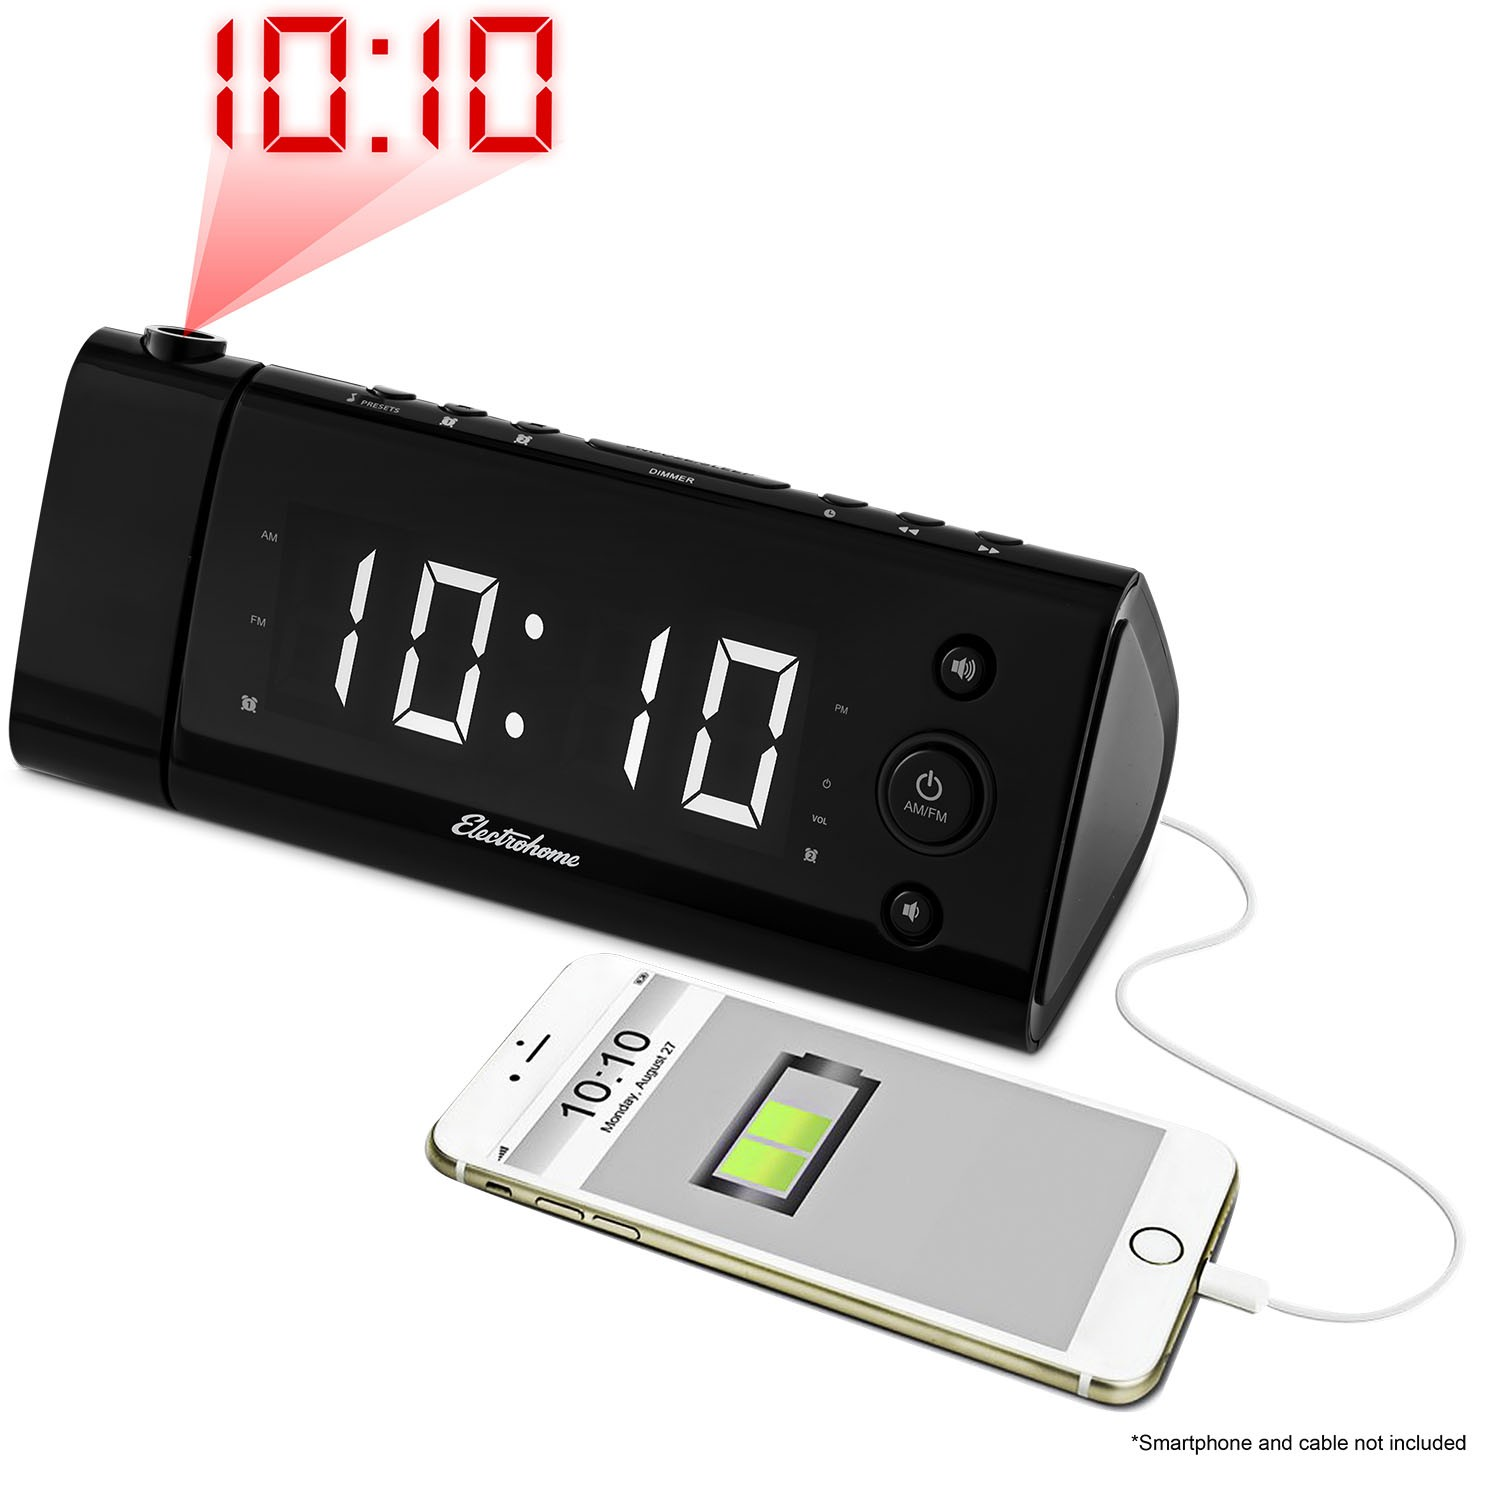 Electrohome USB Charging Projection Alarm Clock Radio EAA475W